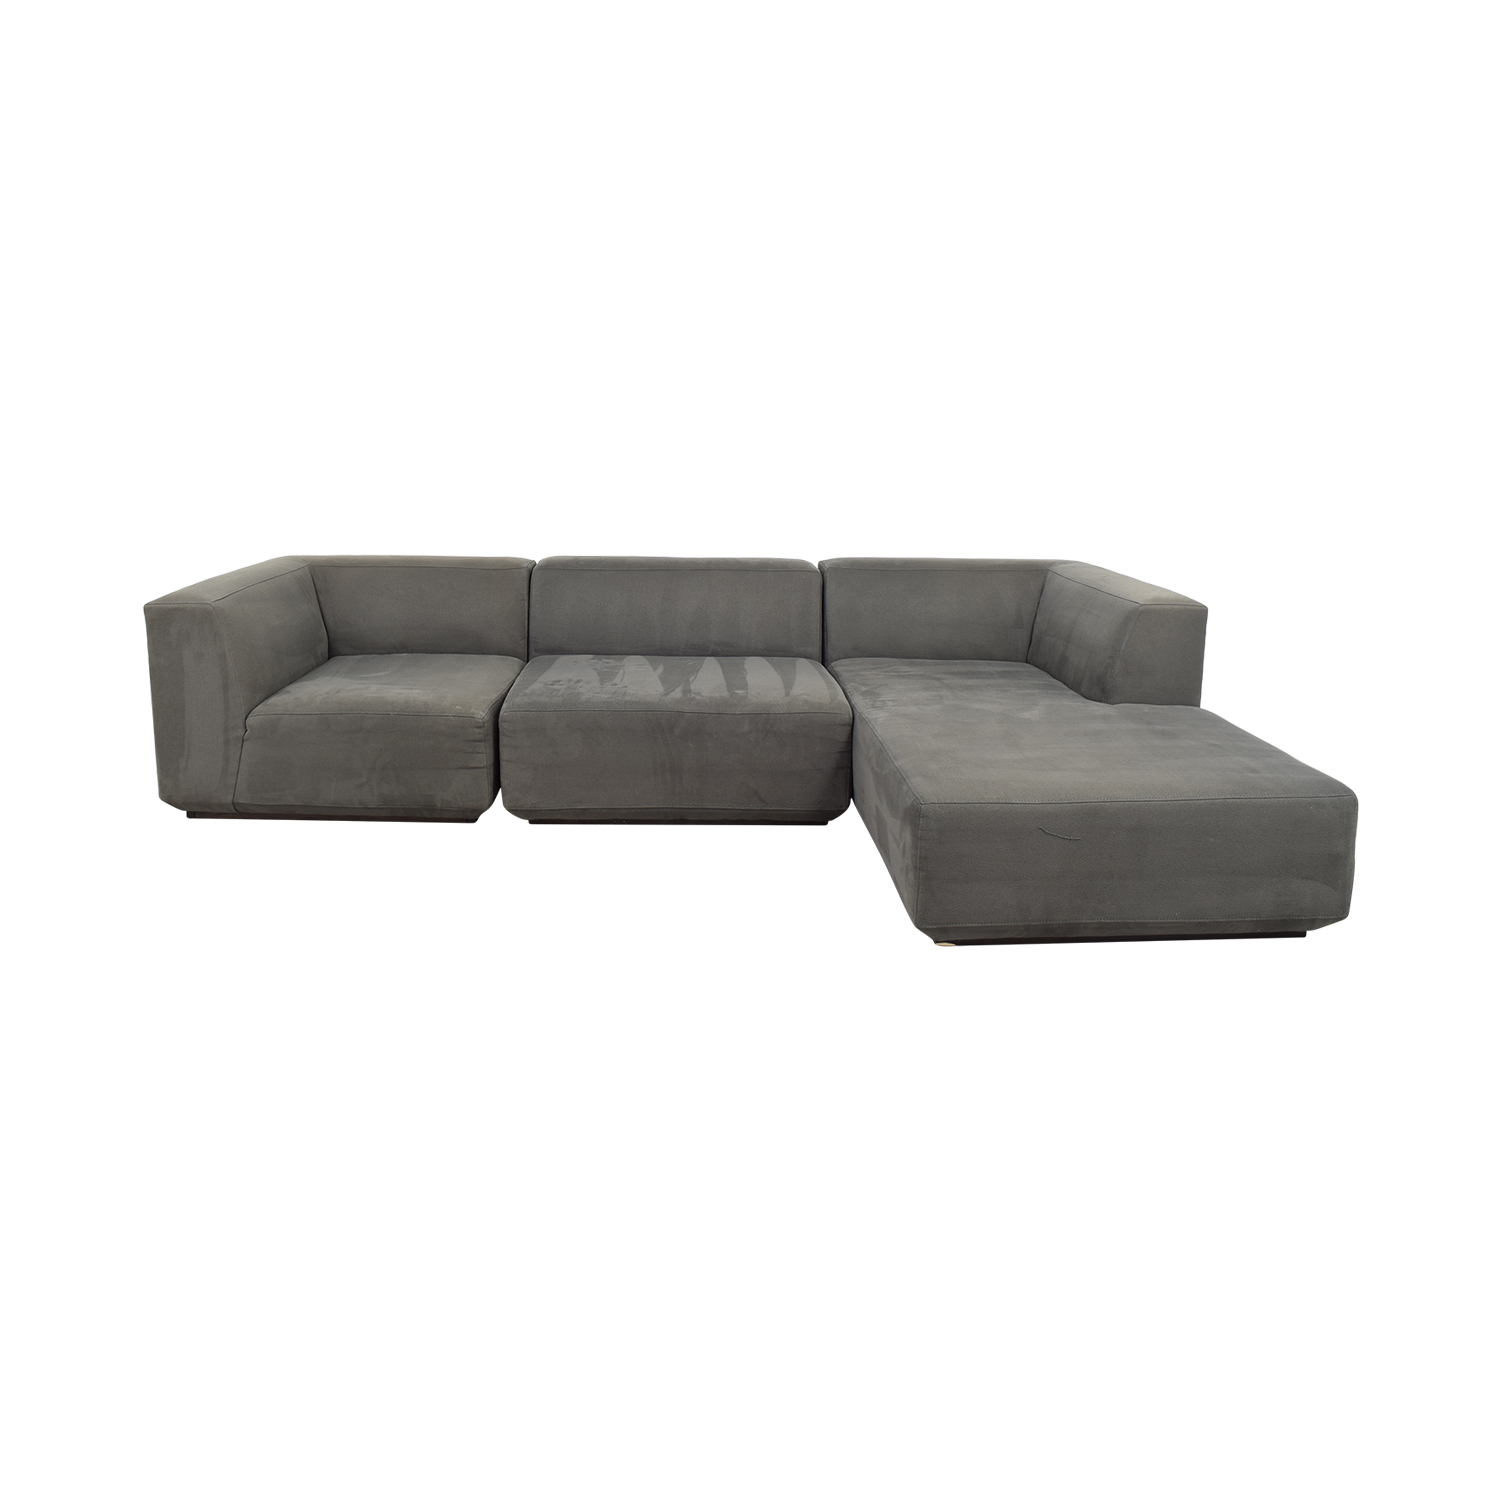 West Elm West Elm Baxter Sectional on sale